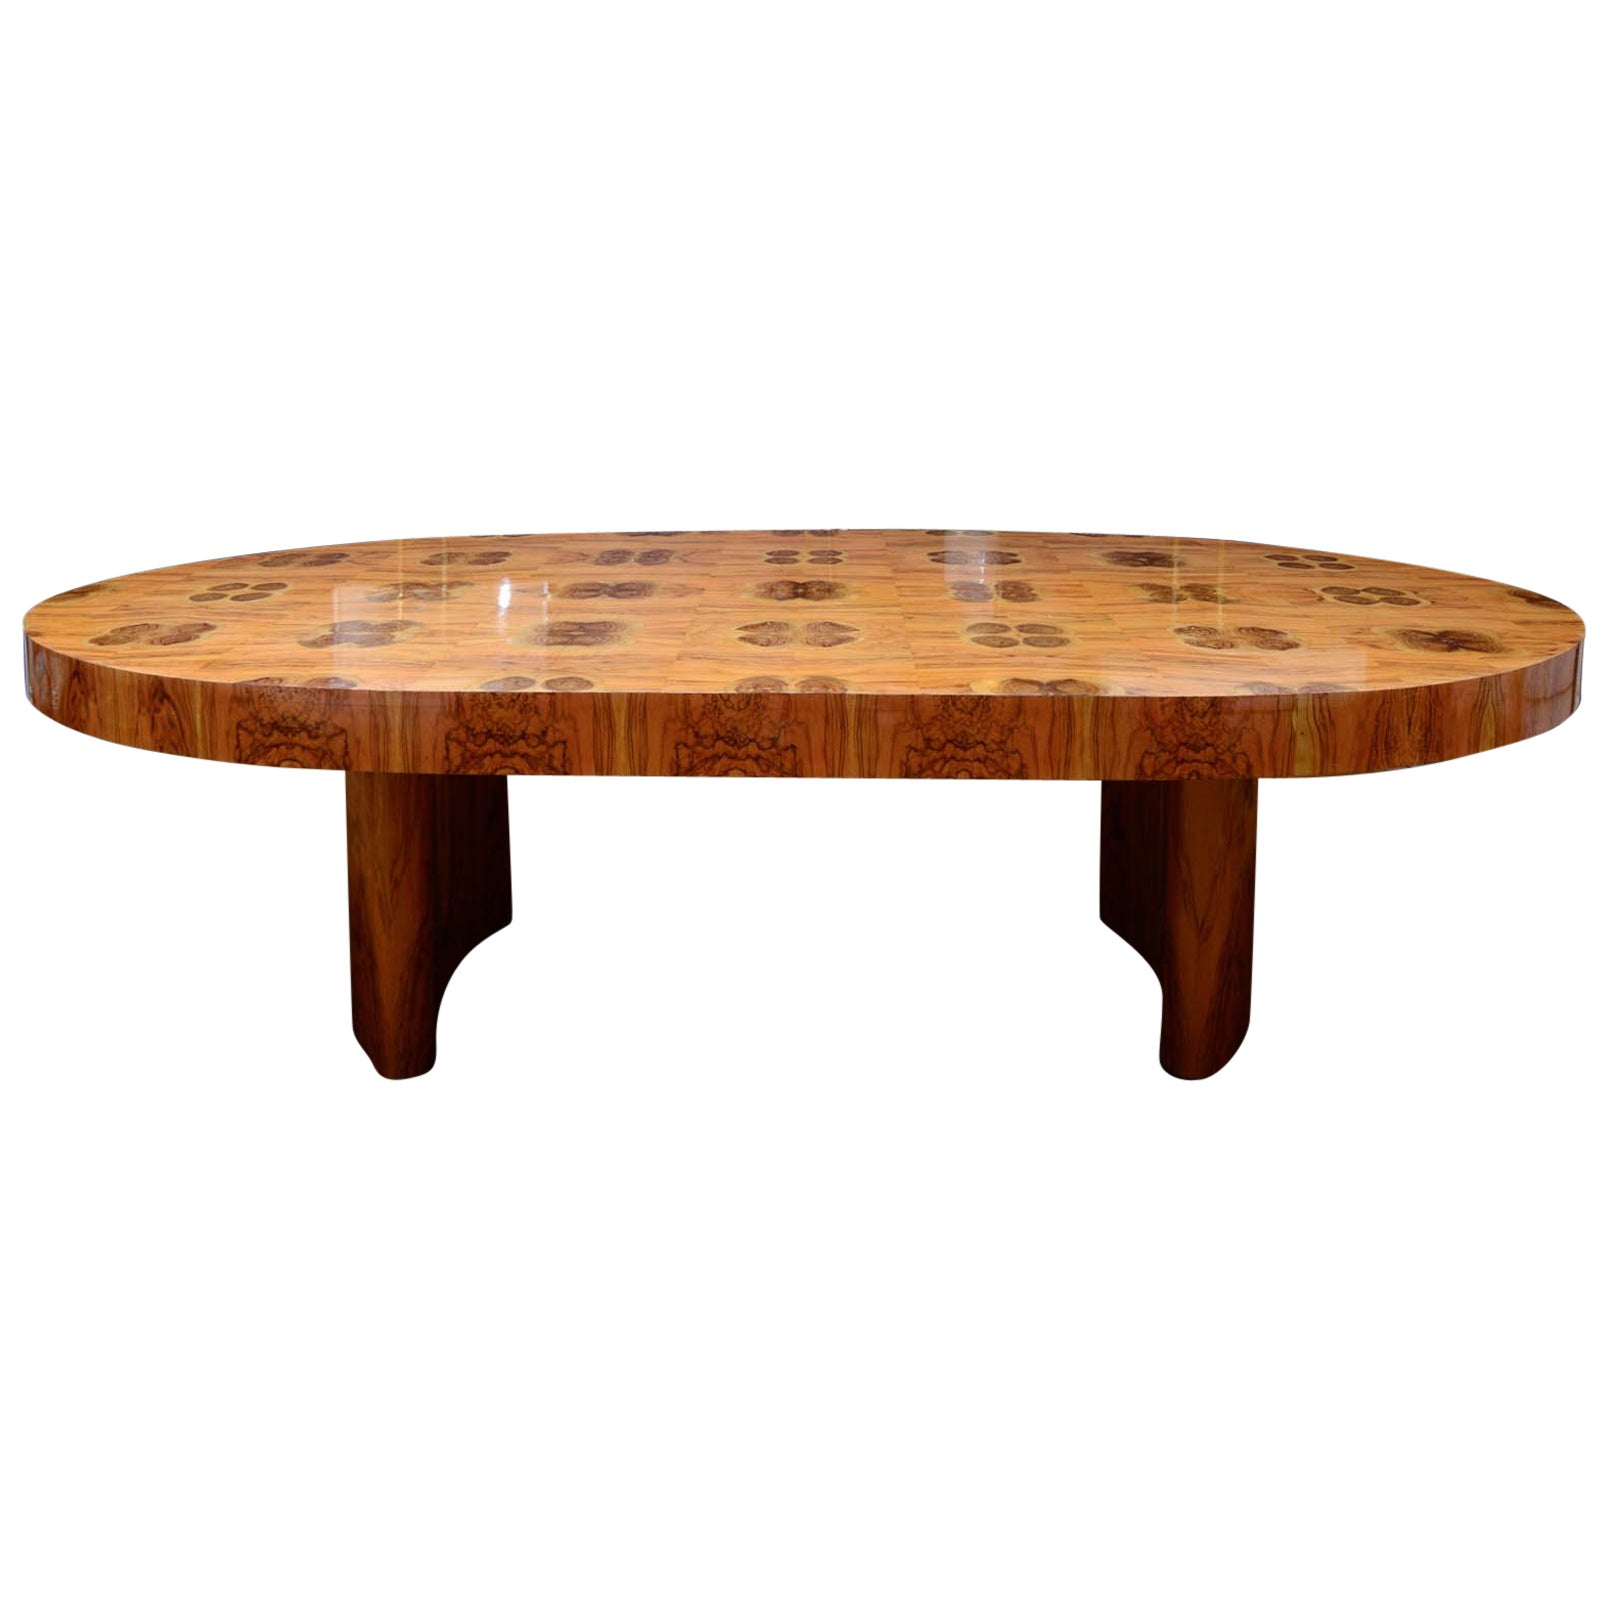 Exceptional Oval Dining Table at cost price